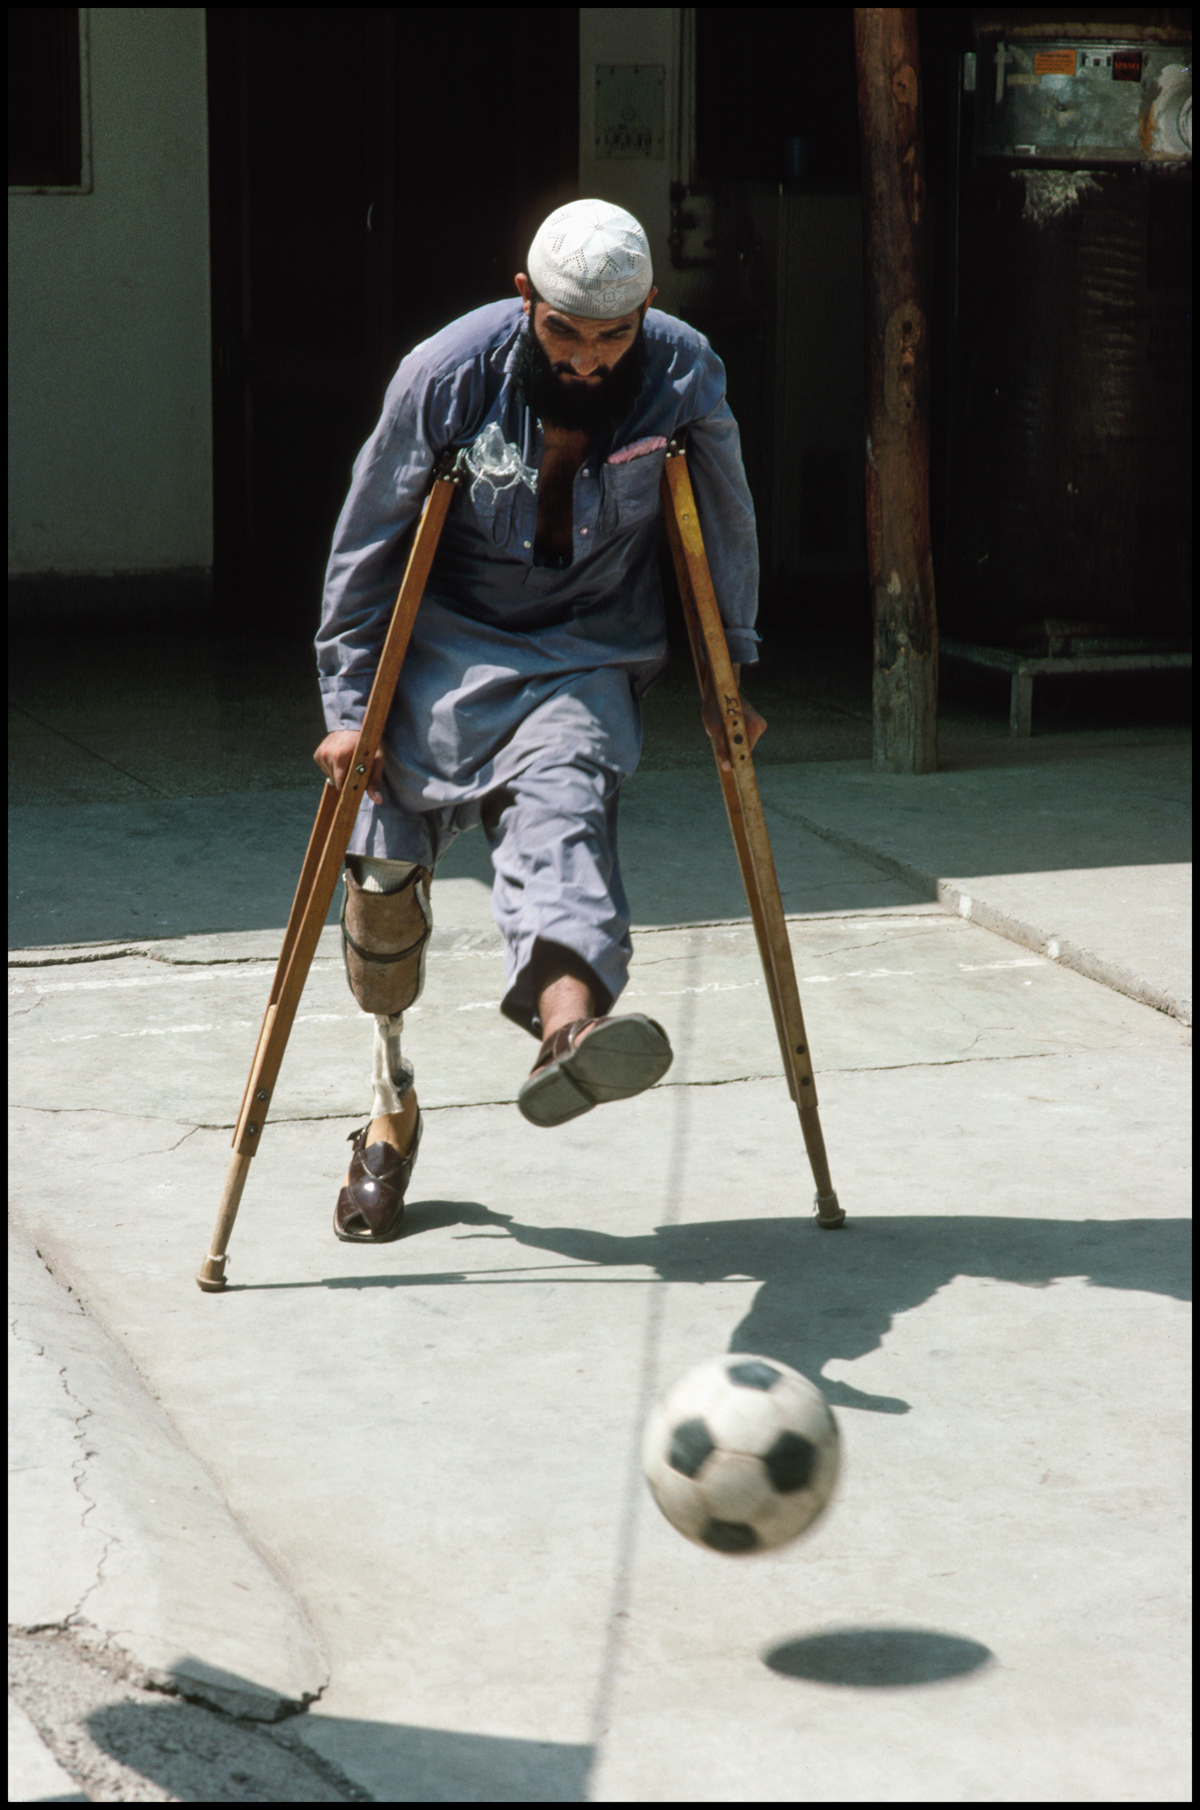 1989, Afghanistan --- Afghans Injured by Land Mines